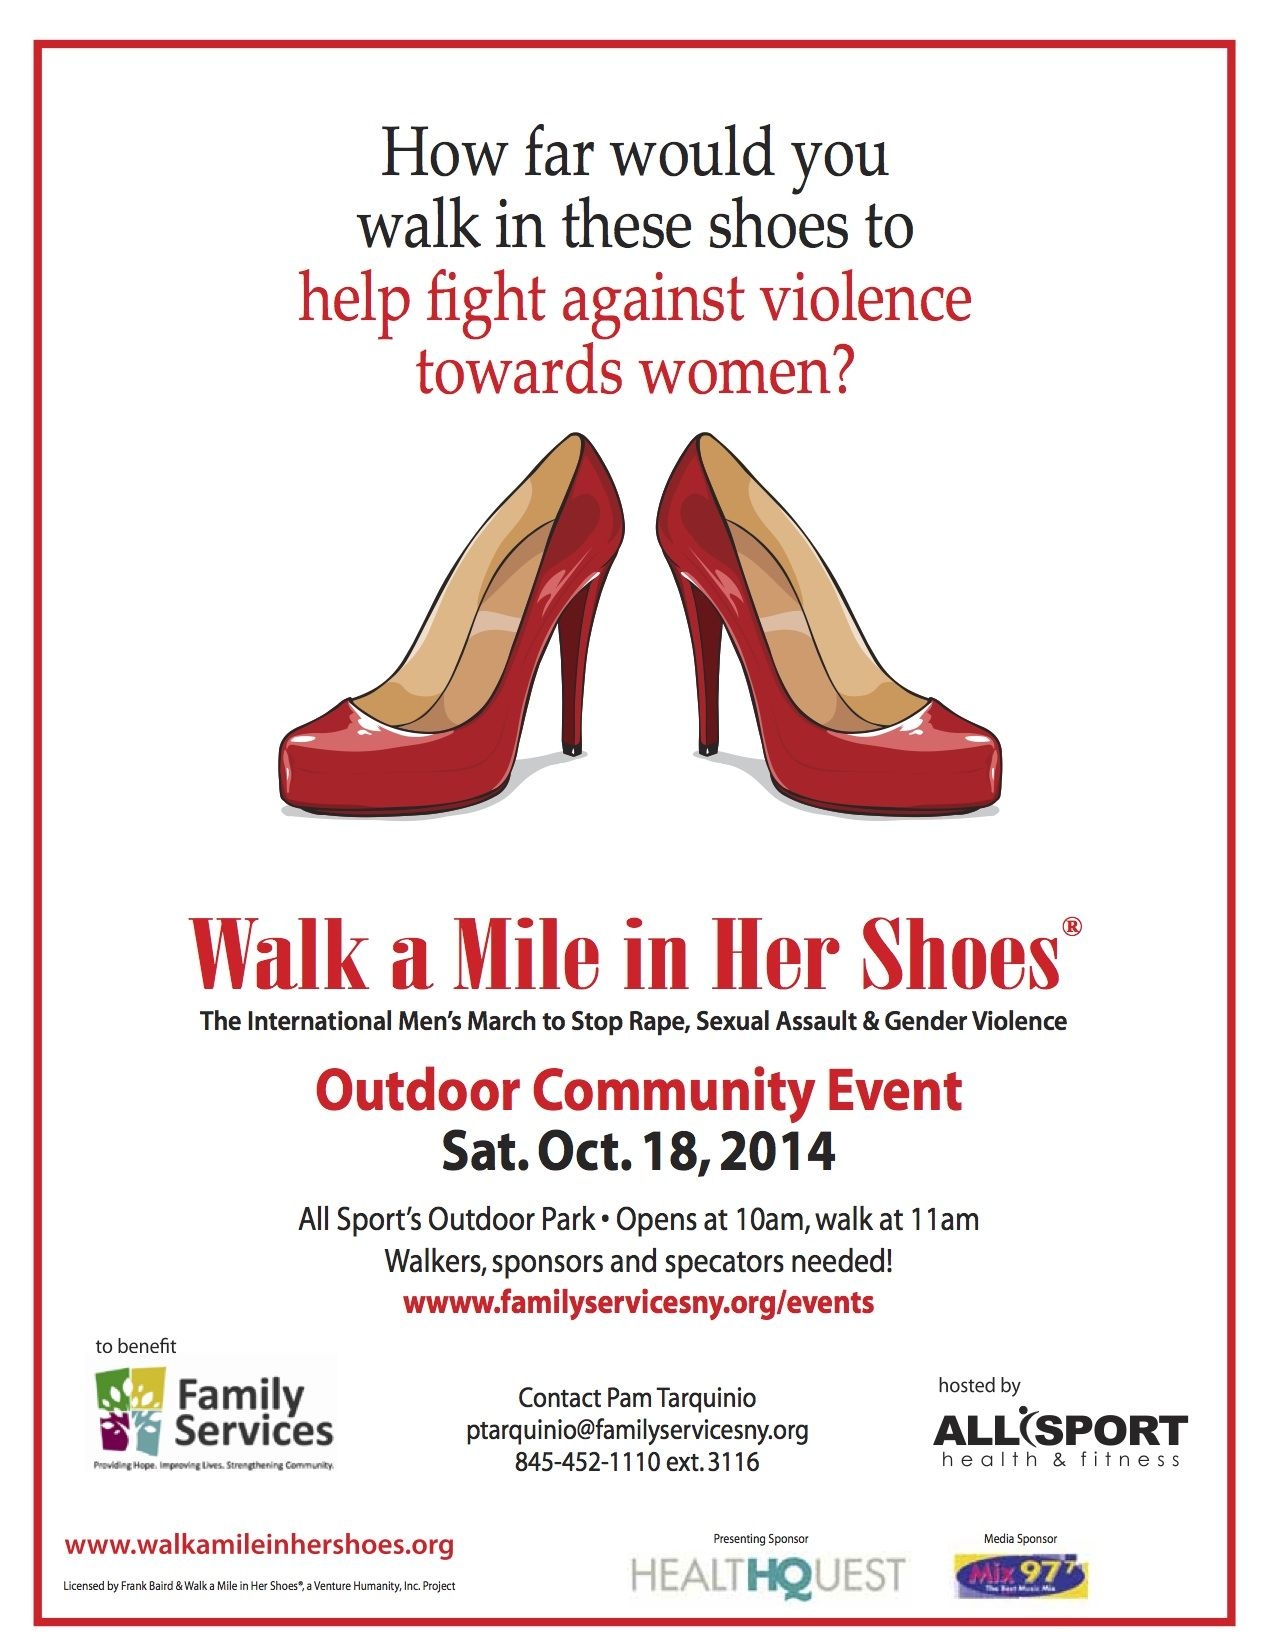 Walk A Mile in Her Shoes on Oct. 18th!